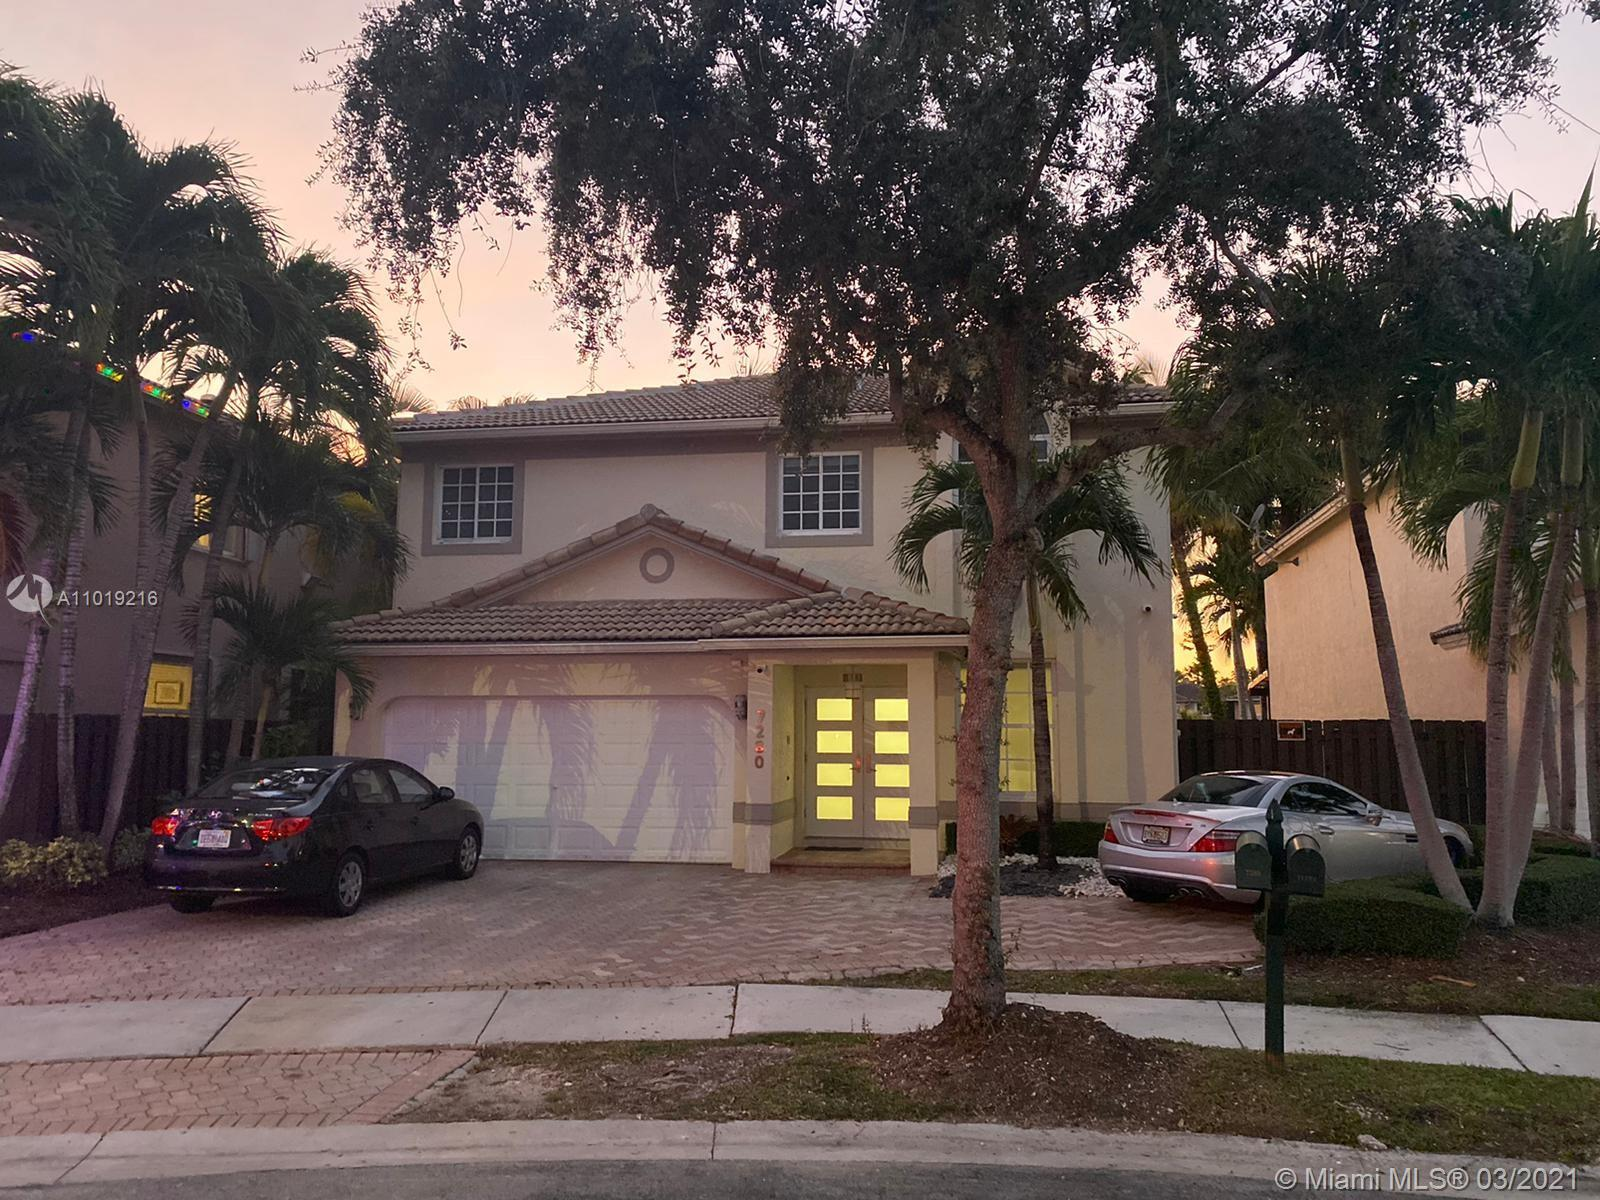 Doral Isles - 7280 NW 112th Ave, Doral, FL 33178